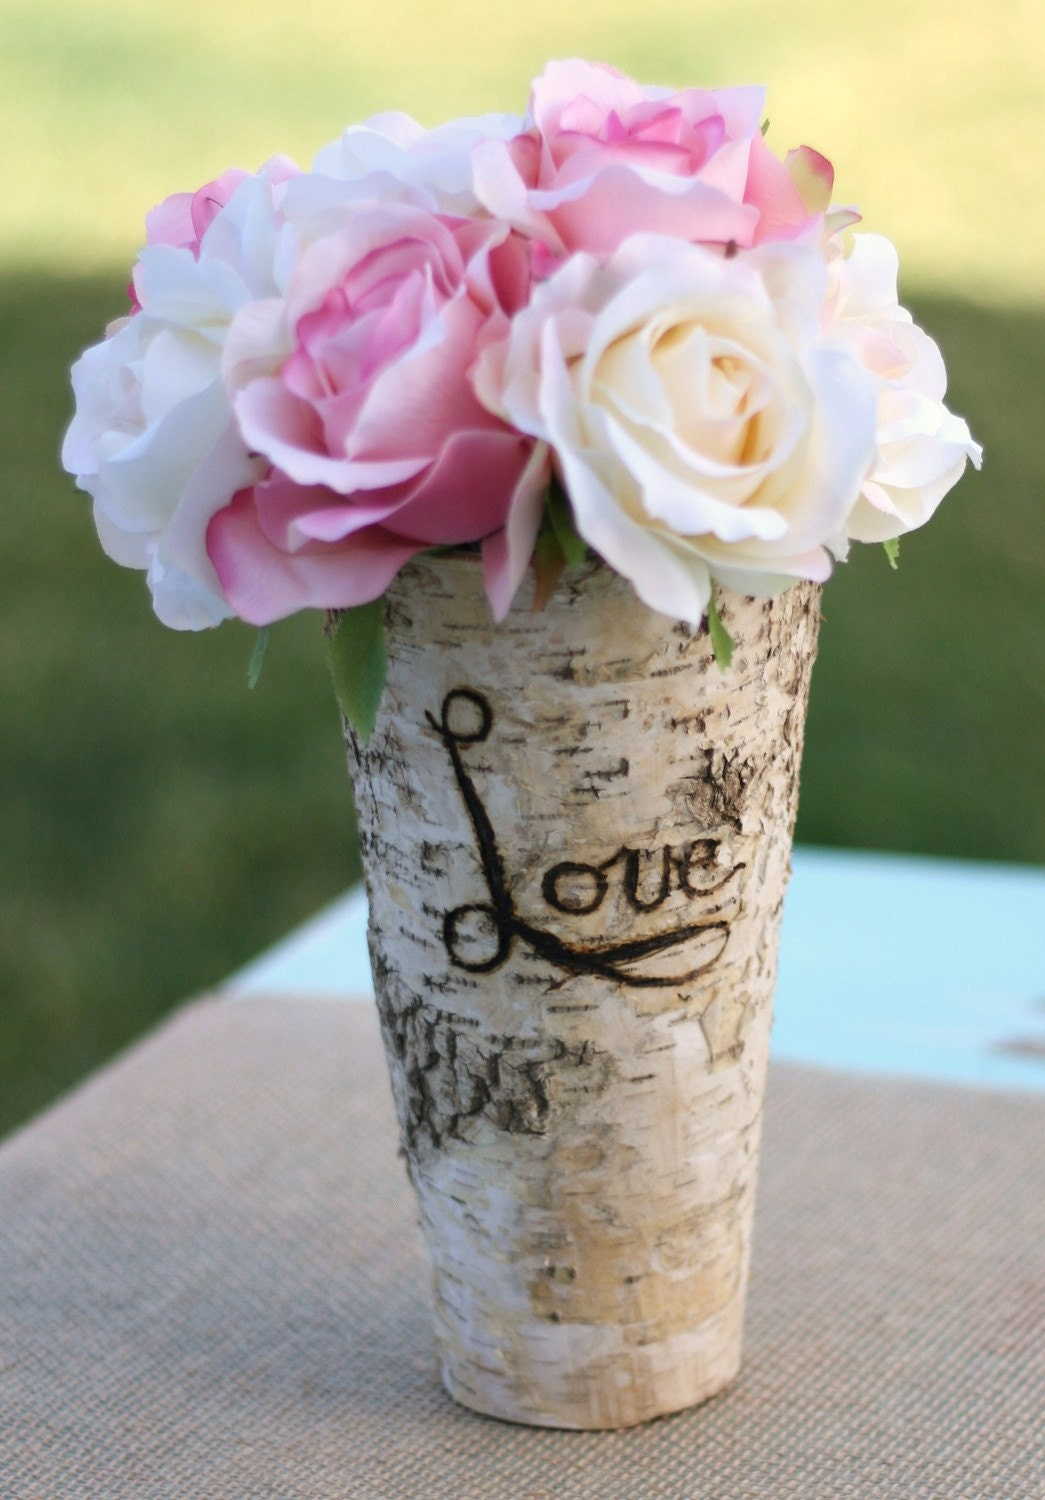 Engraved With LOVE Personalized Tall Birch Wood Vase